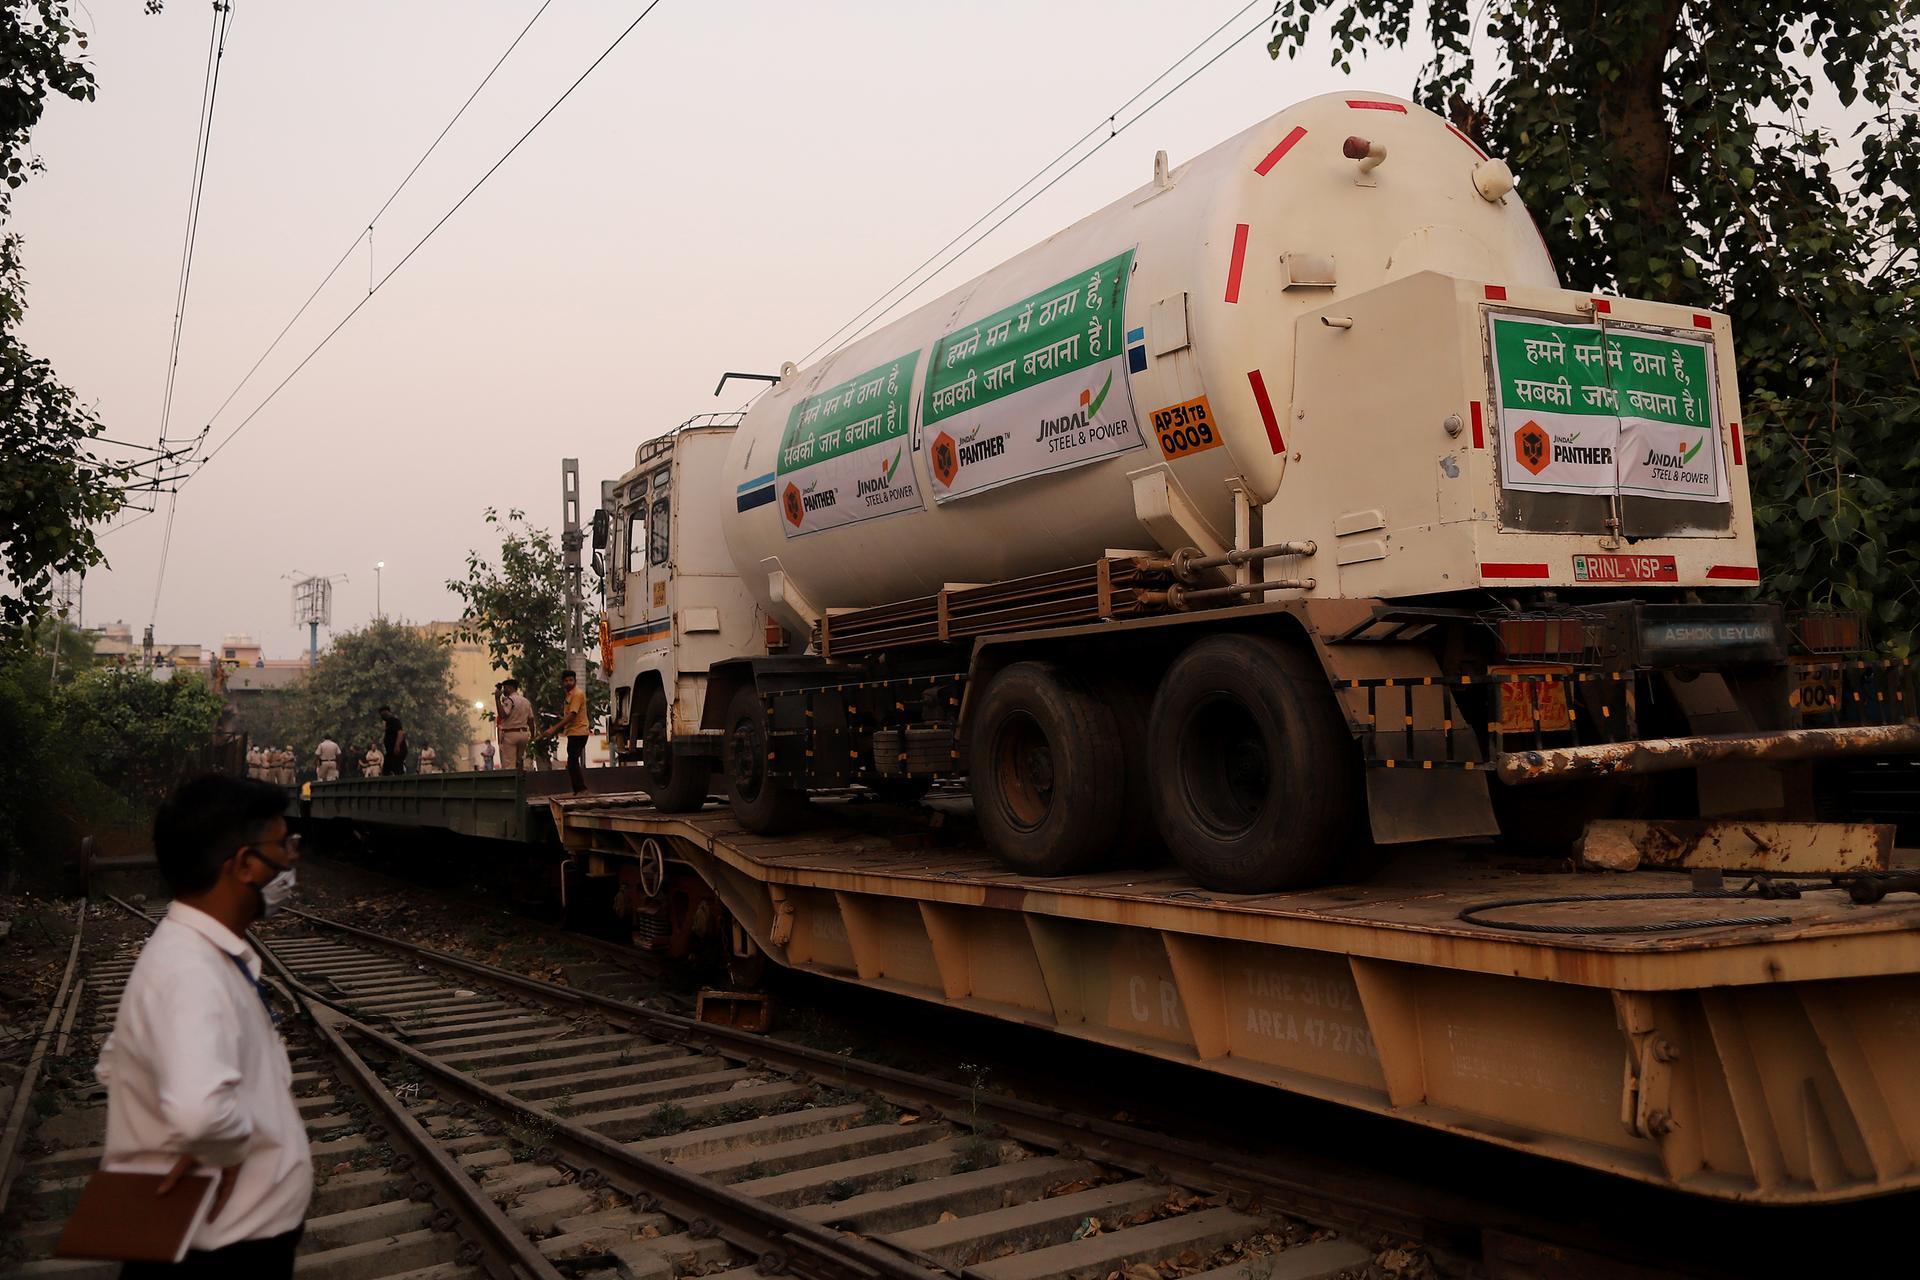 Medical oxygen tankers arrive at a train station in Delhi after being transported on a 'Oxygen Express' train. Bloomberg